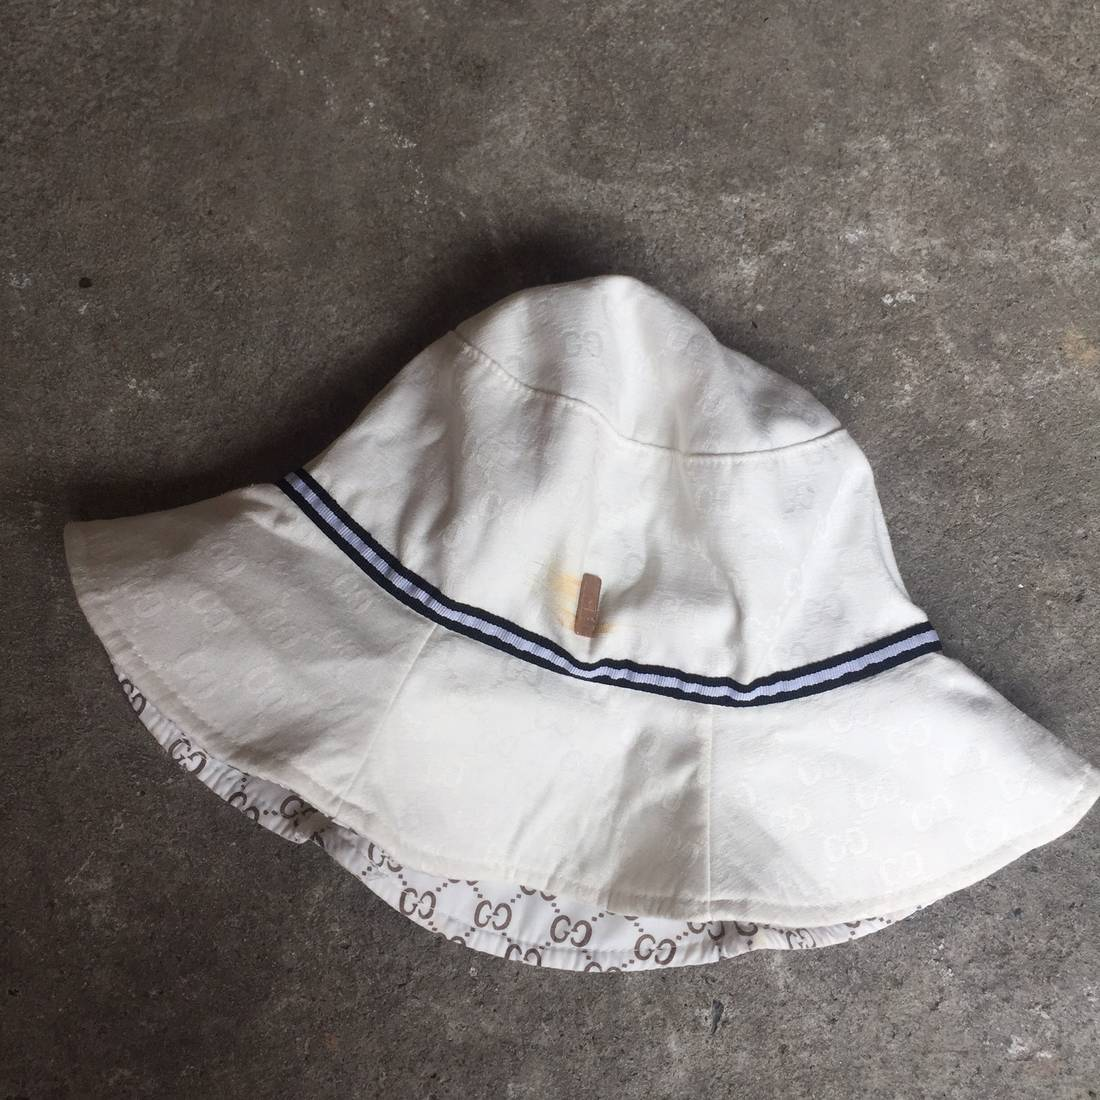 outlet store sale 5cb98 4dd5e gucci vintage gucci bucket hat ... b3bec62f158b